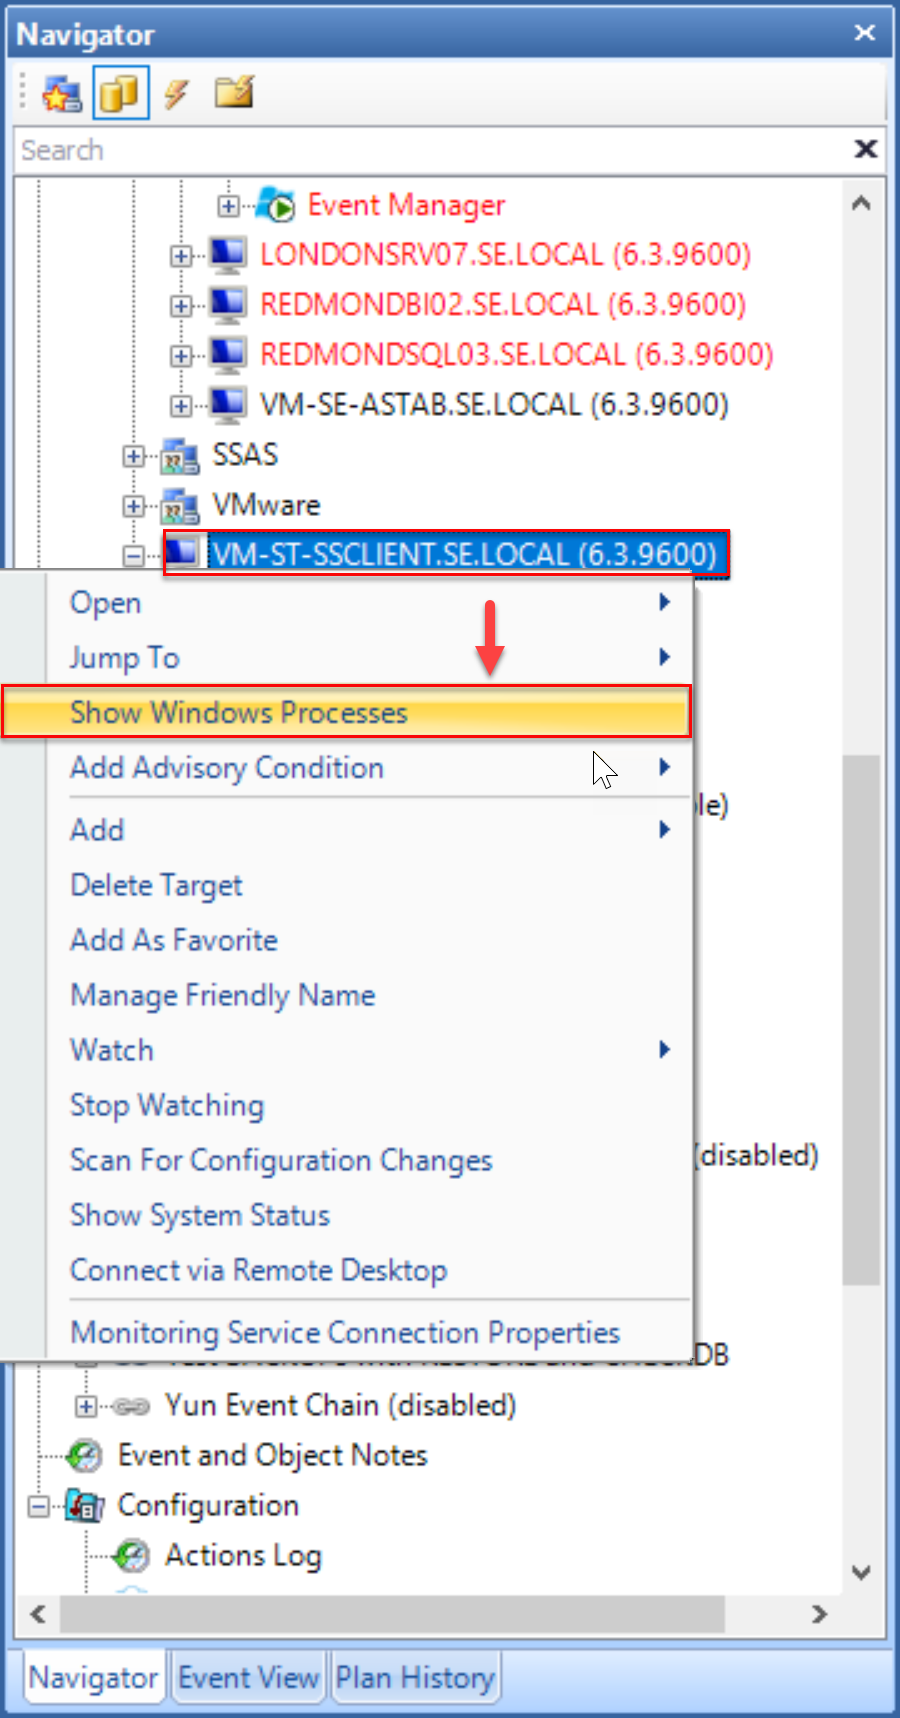 SentryOne Navigator Show Windows Processes from the context menu